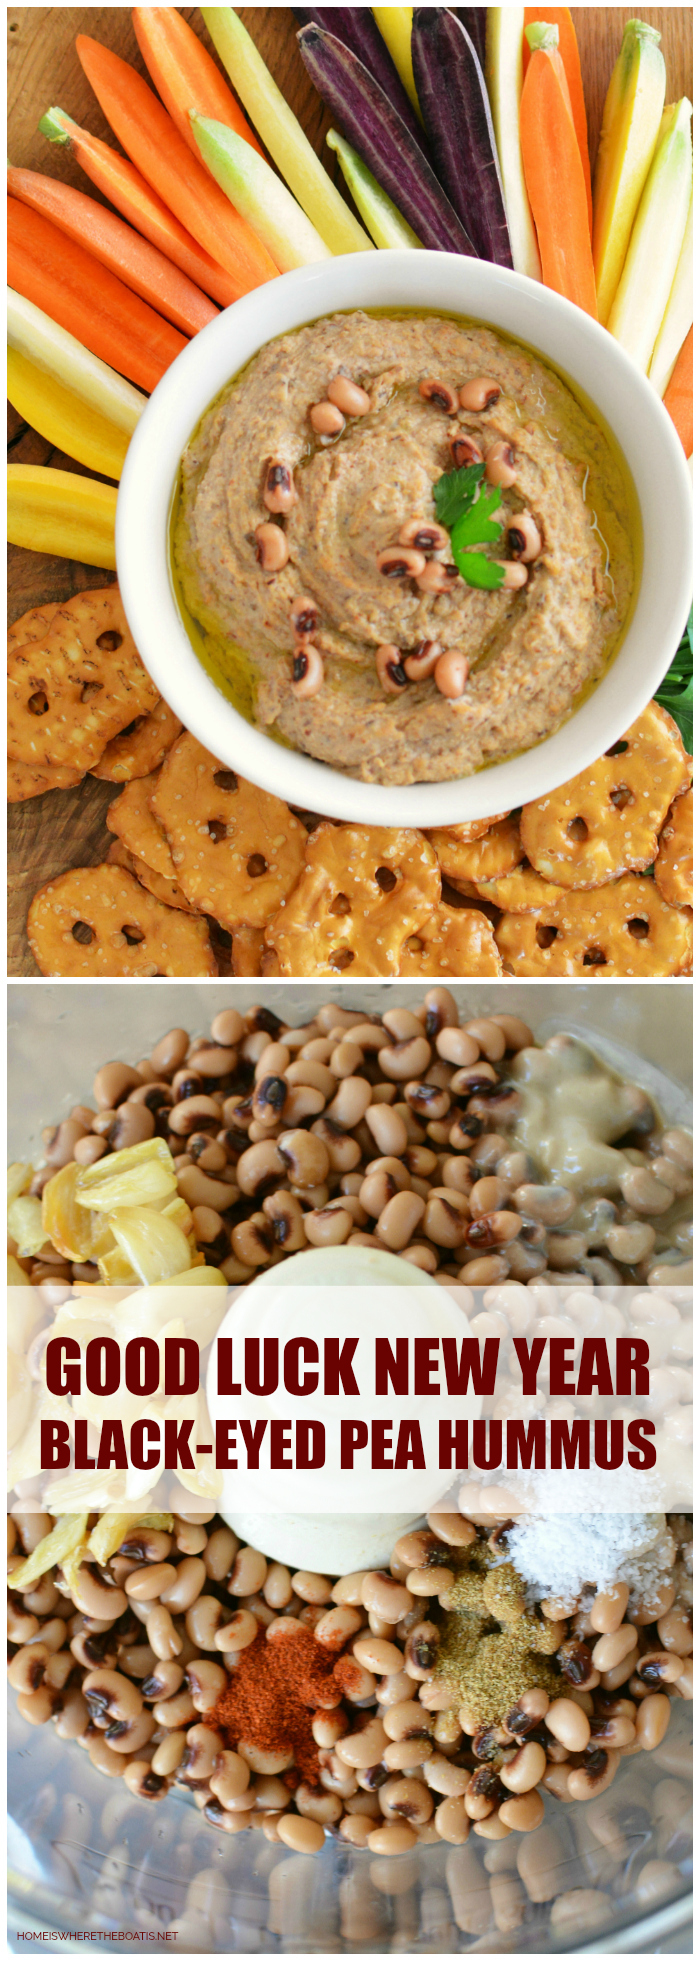 Good Luck New Year Appetizer: Black-Eyed Pea Hummus! This Black-Eyed Pea Hummus is a delicious and healthy way to serve up some good luck for the New Year! #NewYear #goodluckfood #blackeyedpeas #hummus #healthy #appetizer